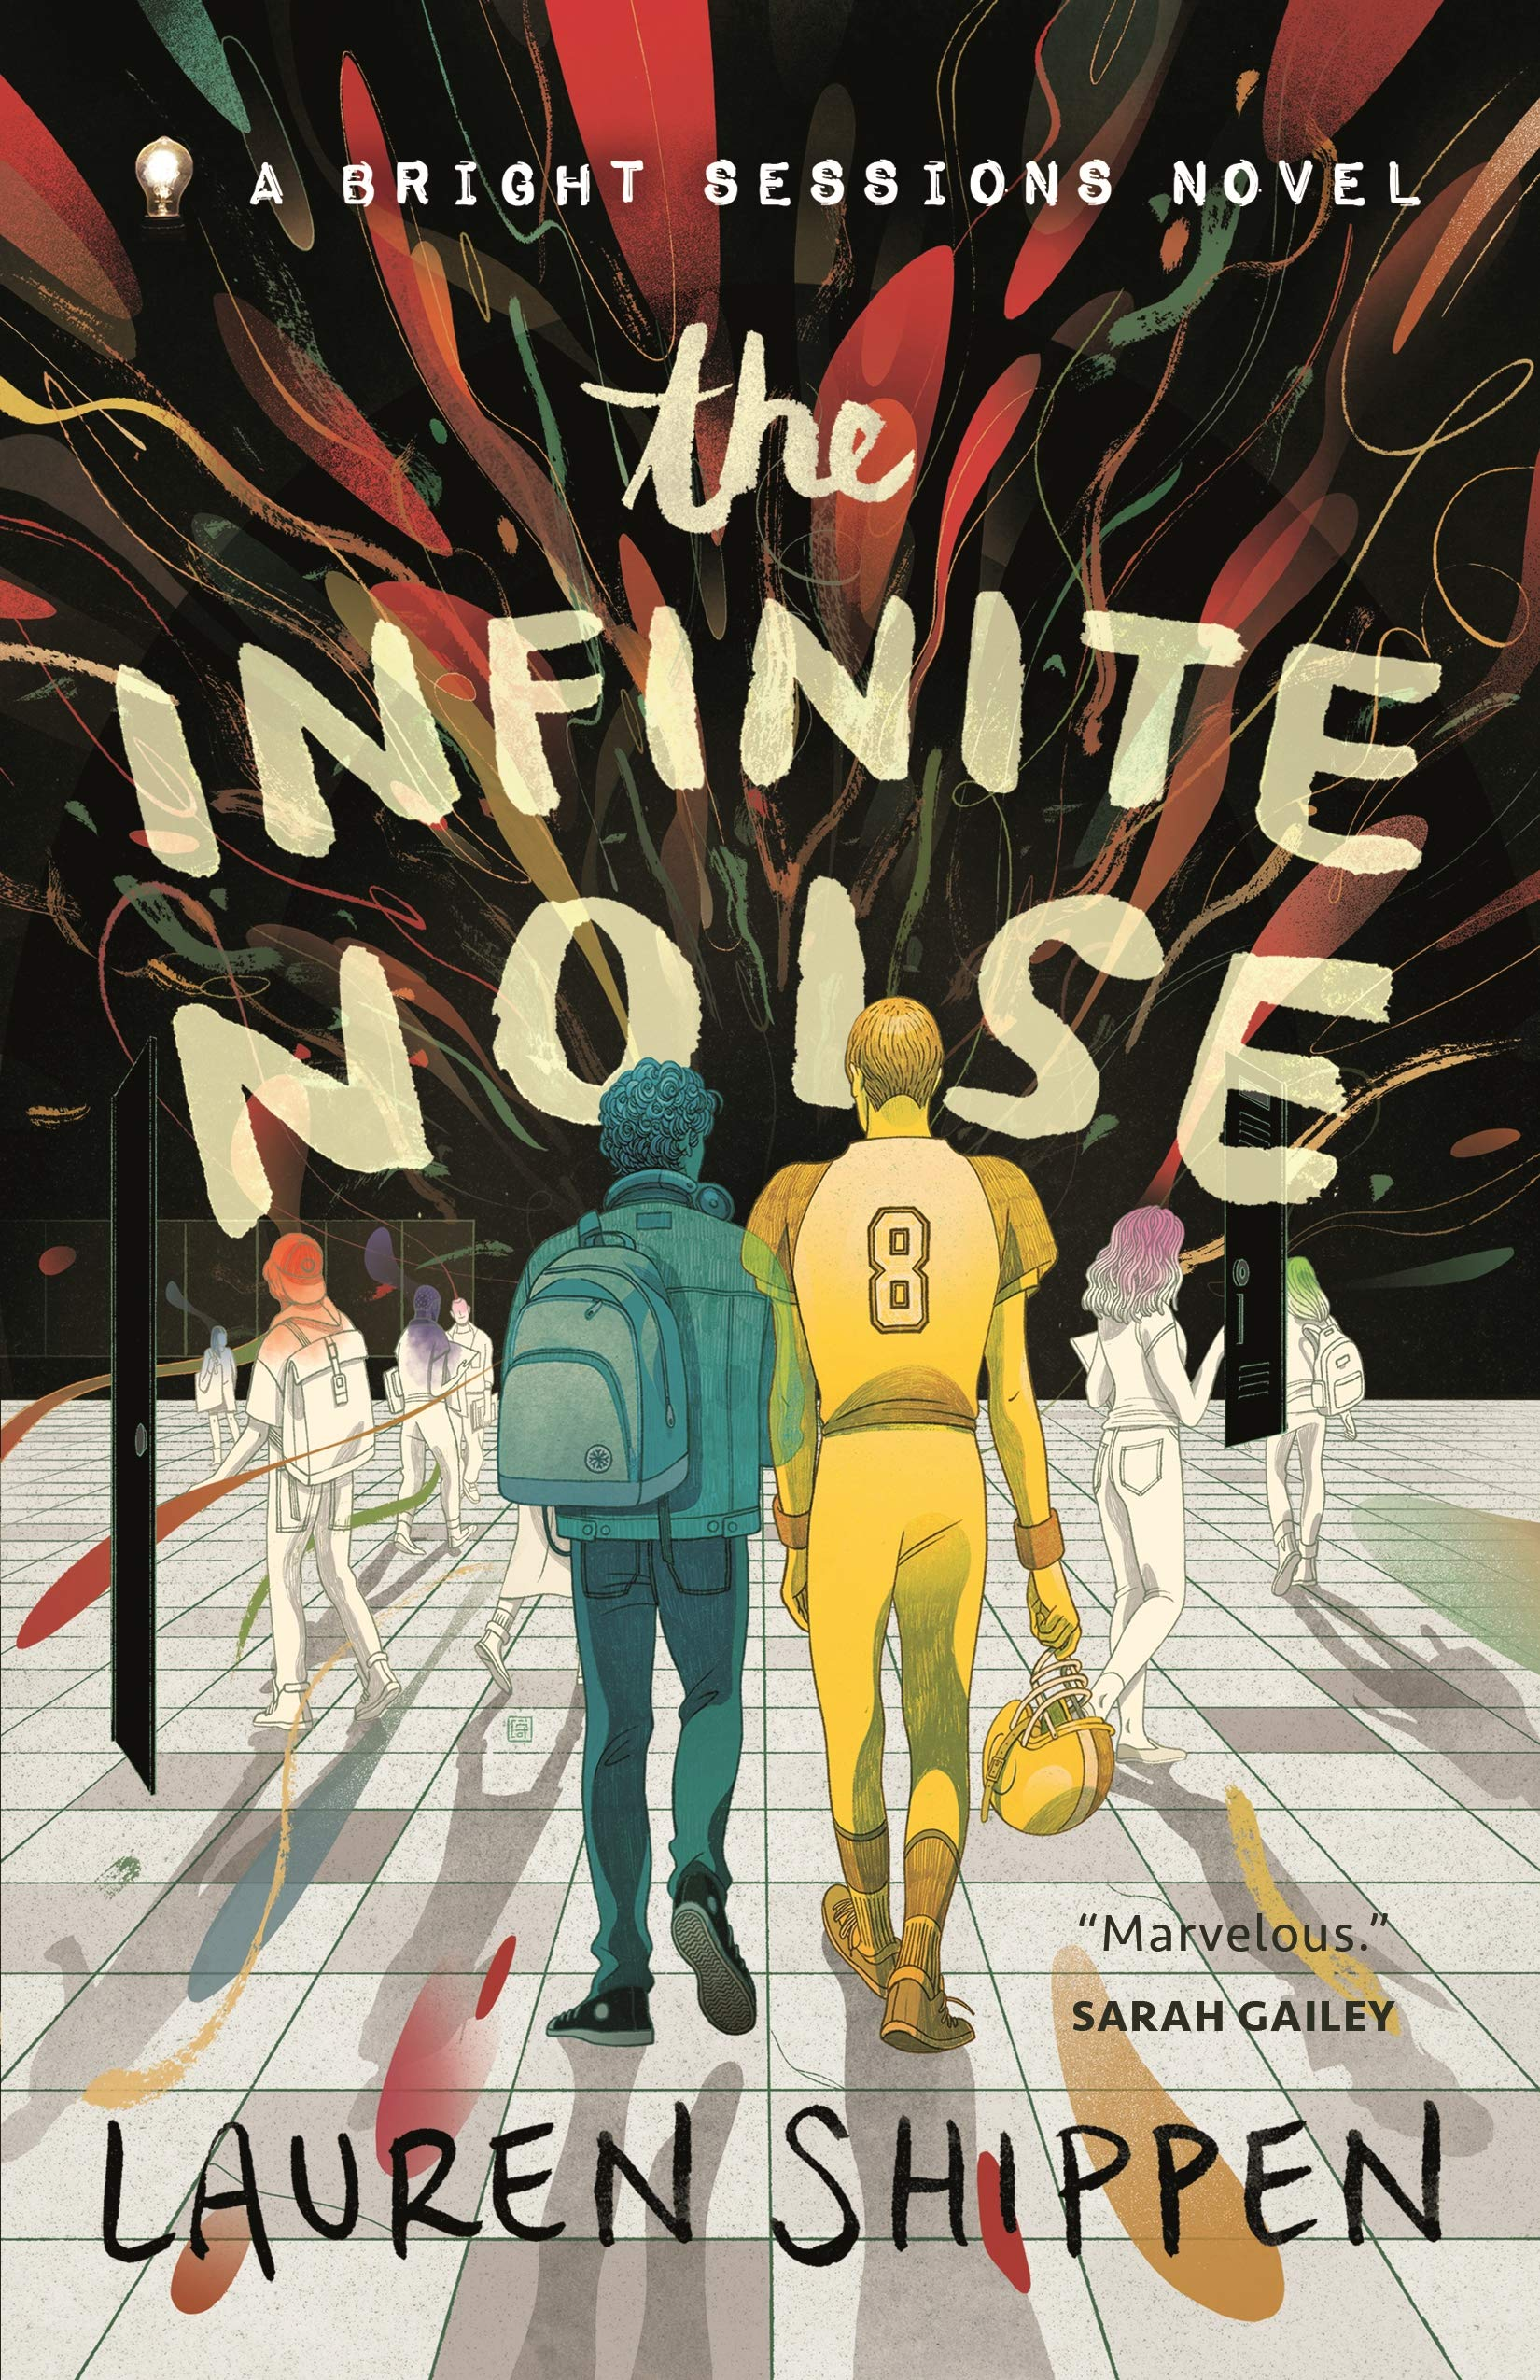 Amazon.com: The Infinite Noise: A Bright Sessions Novel (The Bright  Sessions (1)) (9781250297518): Shippen, Lauren: Books